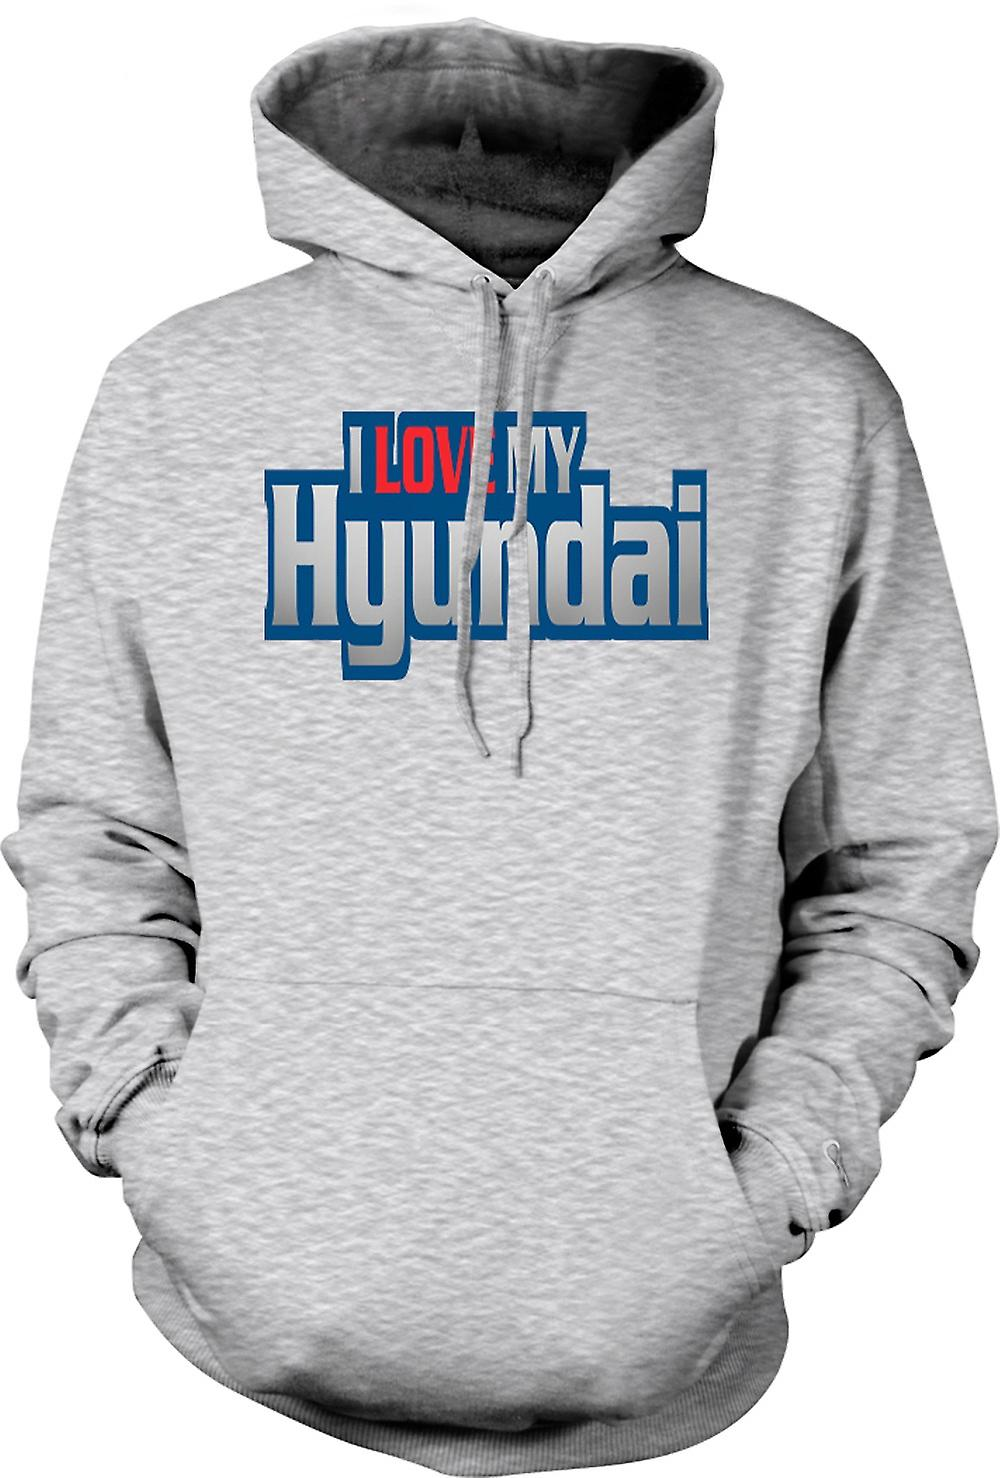 Mens Hoodie - I Love My Hyundai - Car Enthusiast